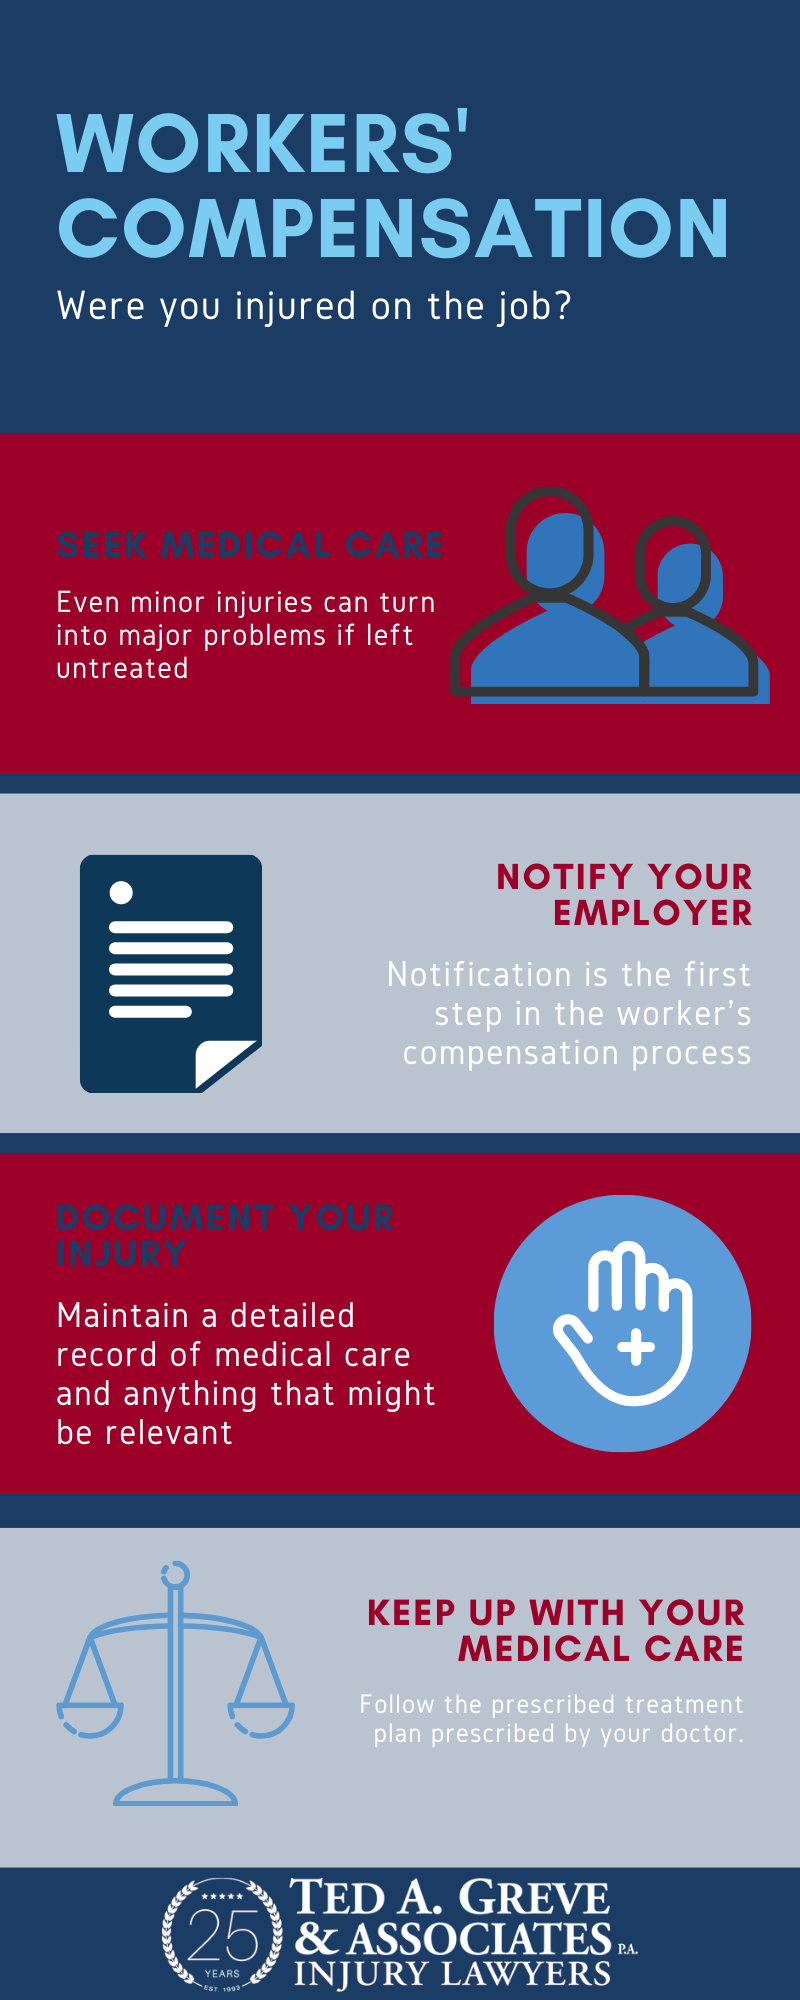 Ted Greve Augusta Workers Comp Infographic